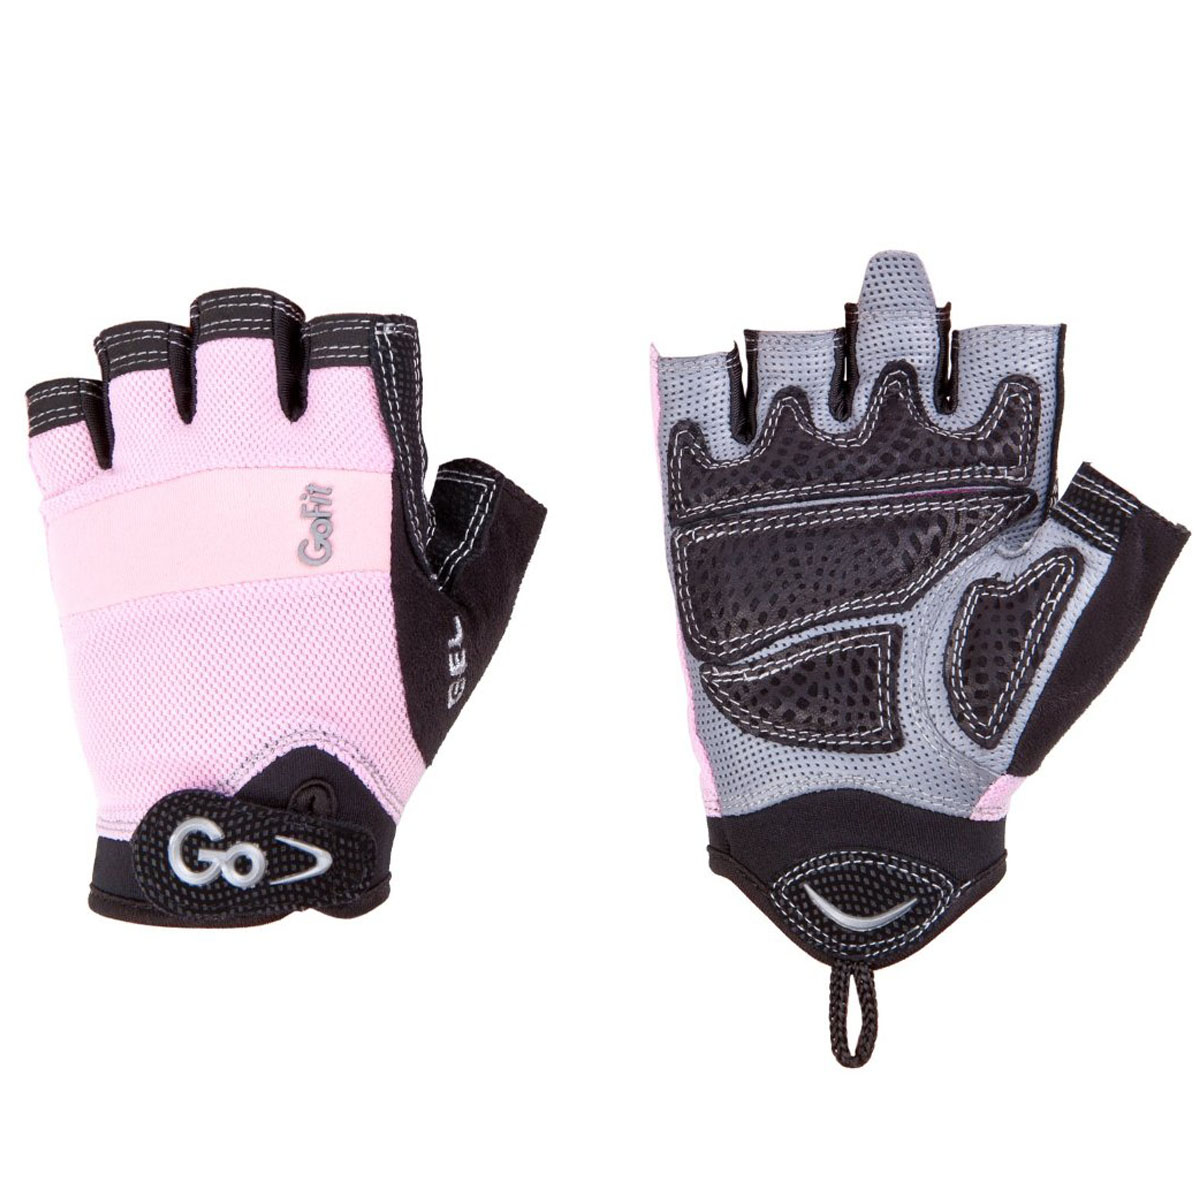 GoFit Women's Xtreme Articulated Grip Weight Lifting Gloves - Pink/Black